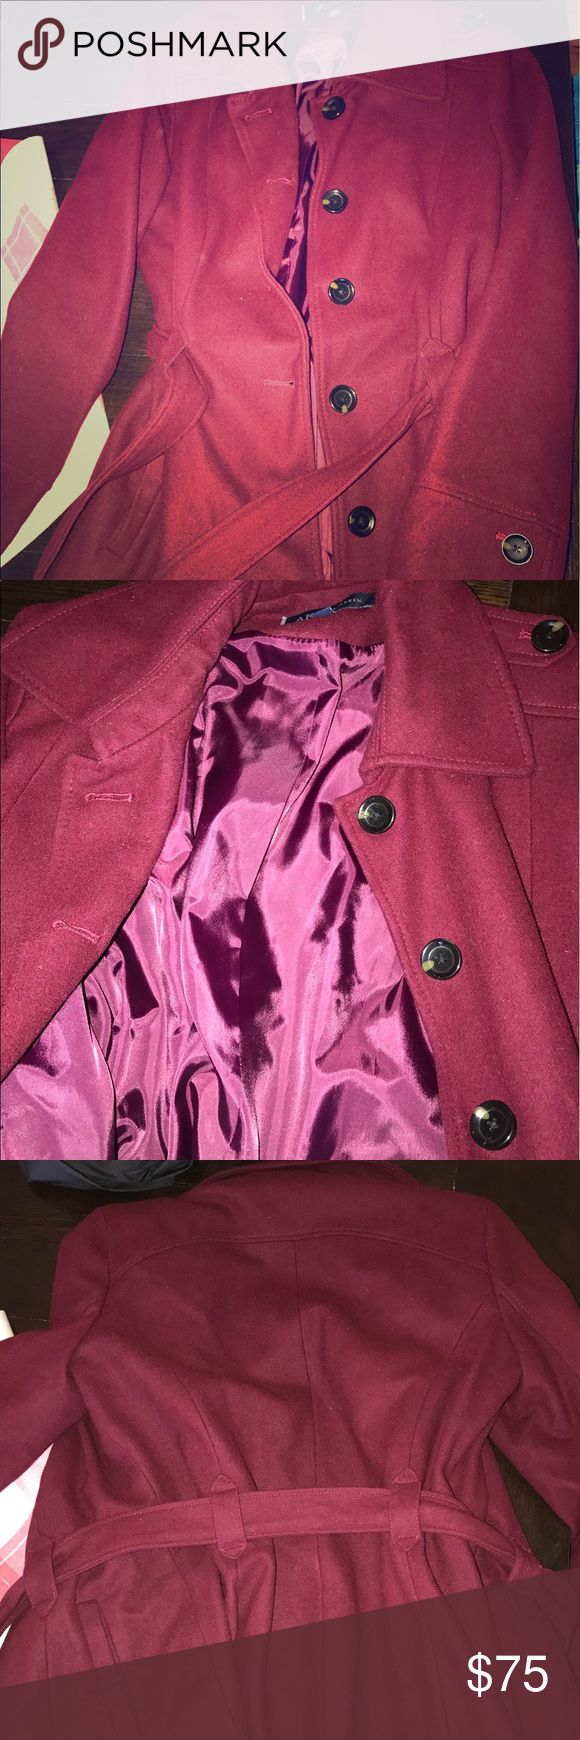 Red down coat AKanneklein ladies size L, long, down button coat. Comes with belt. In great condition, looks brand new! AKanneklein Jackets & Coats